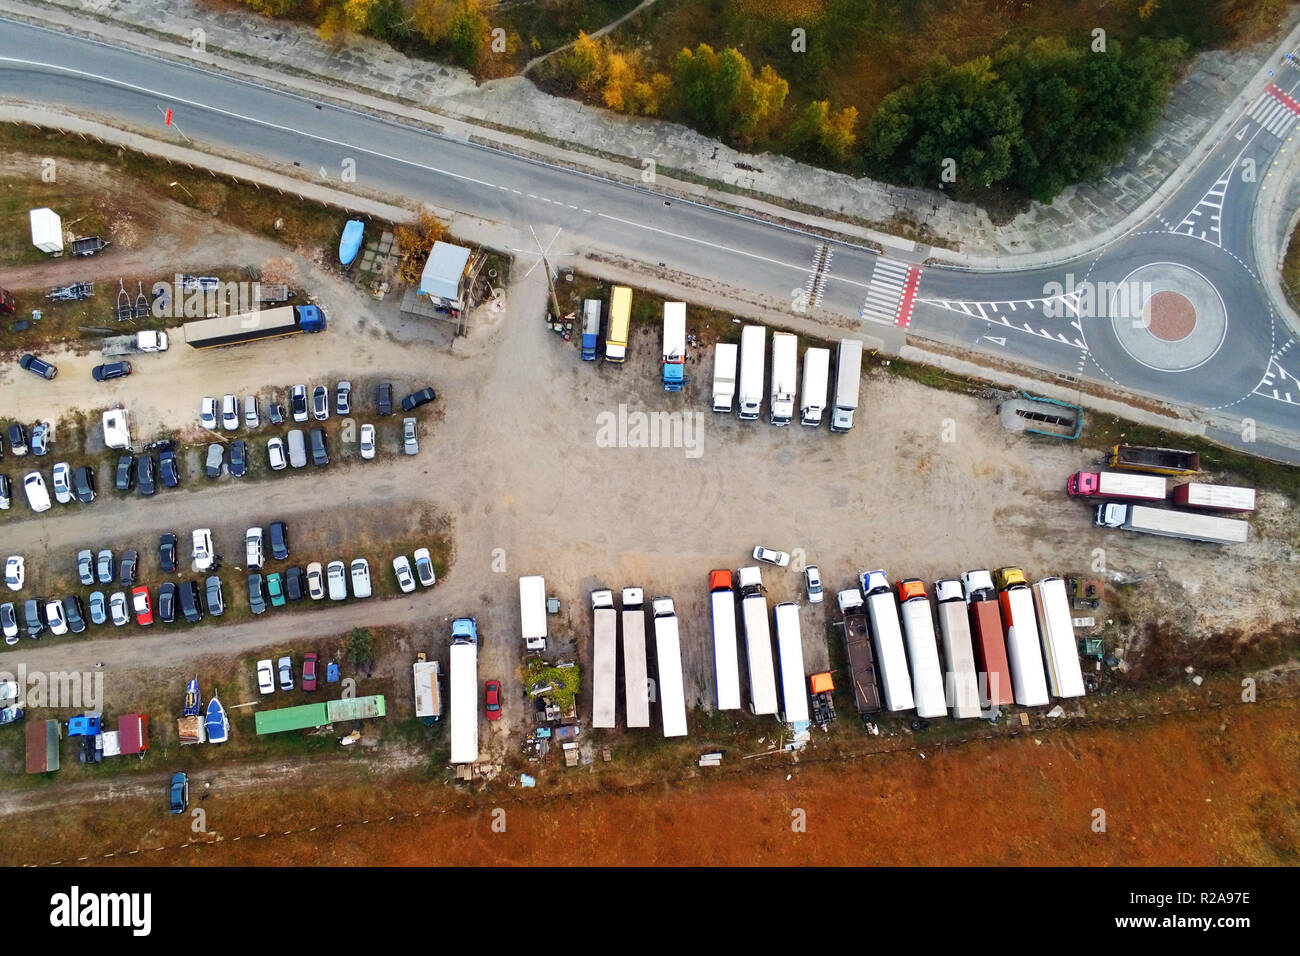 Aerial view of unpaved natural parking with lots of trucks, trailers and cars. Rest place near road and circle junction - Stock Image